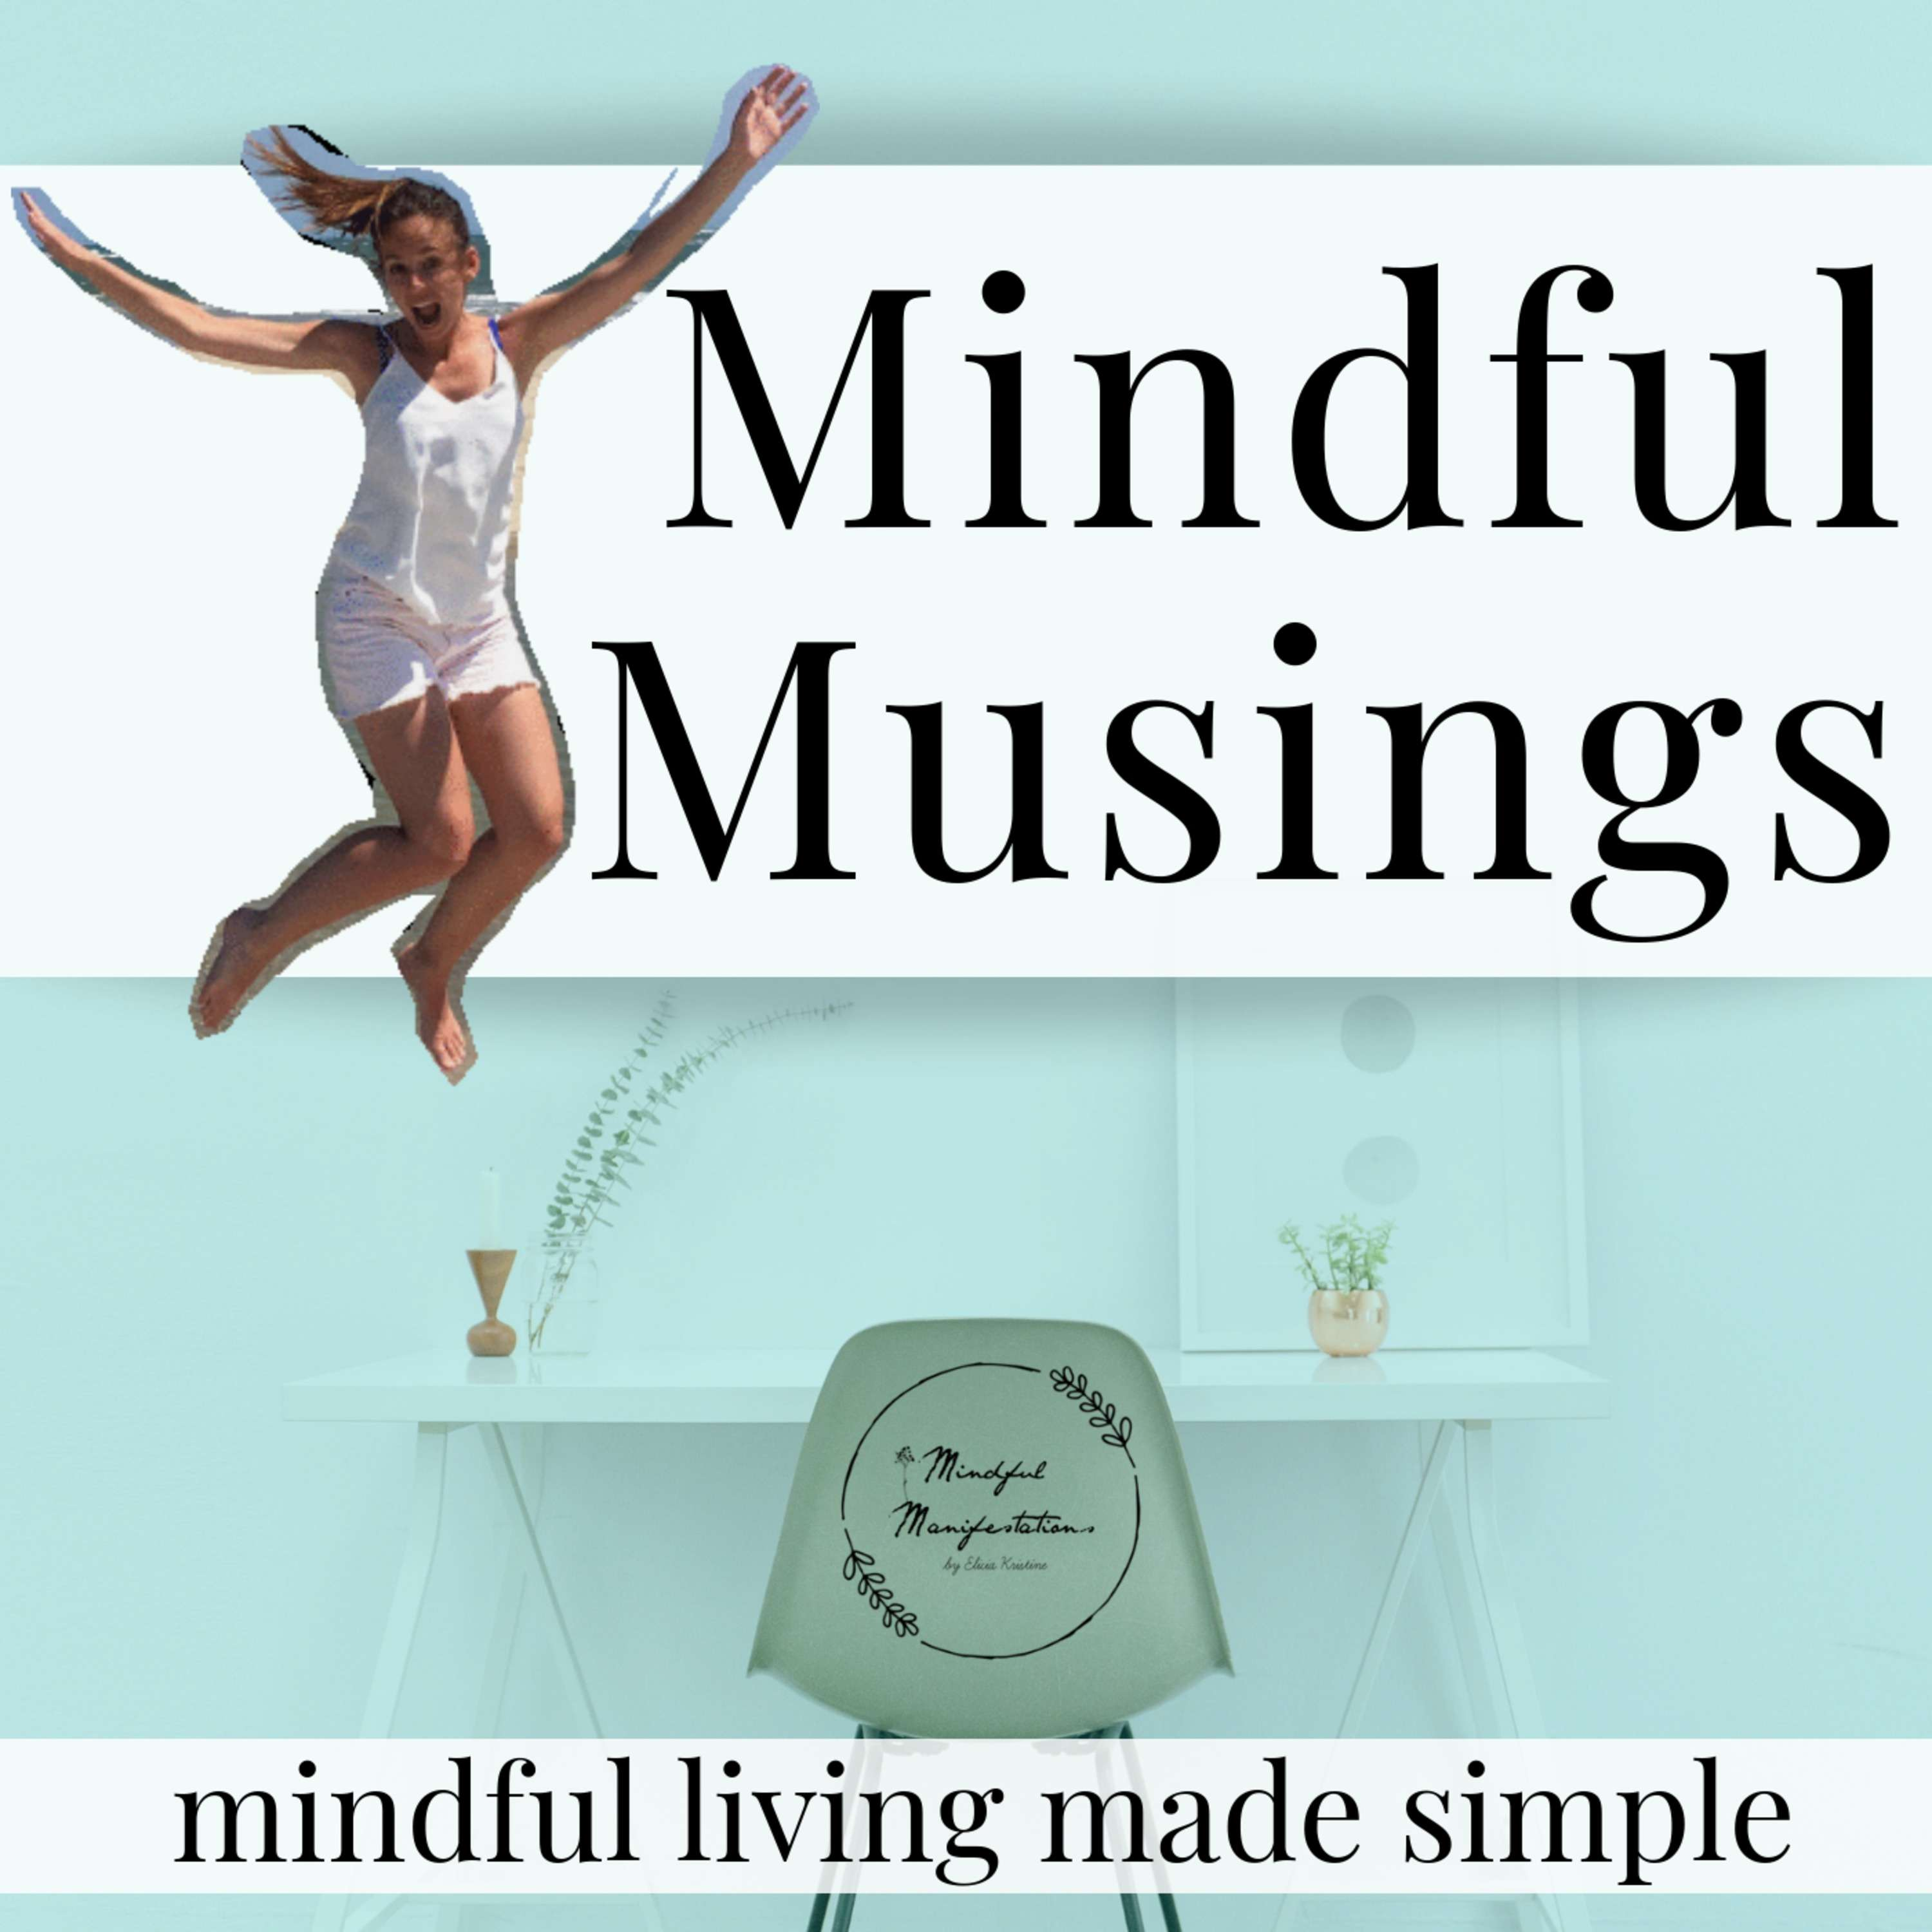 Mindful Musings: Mindful Living Made Simple